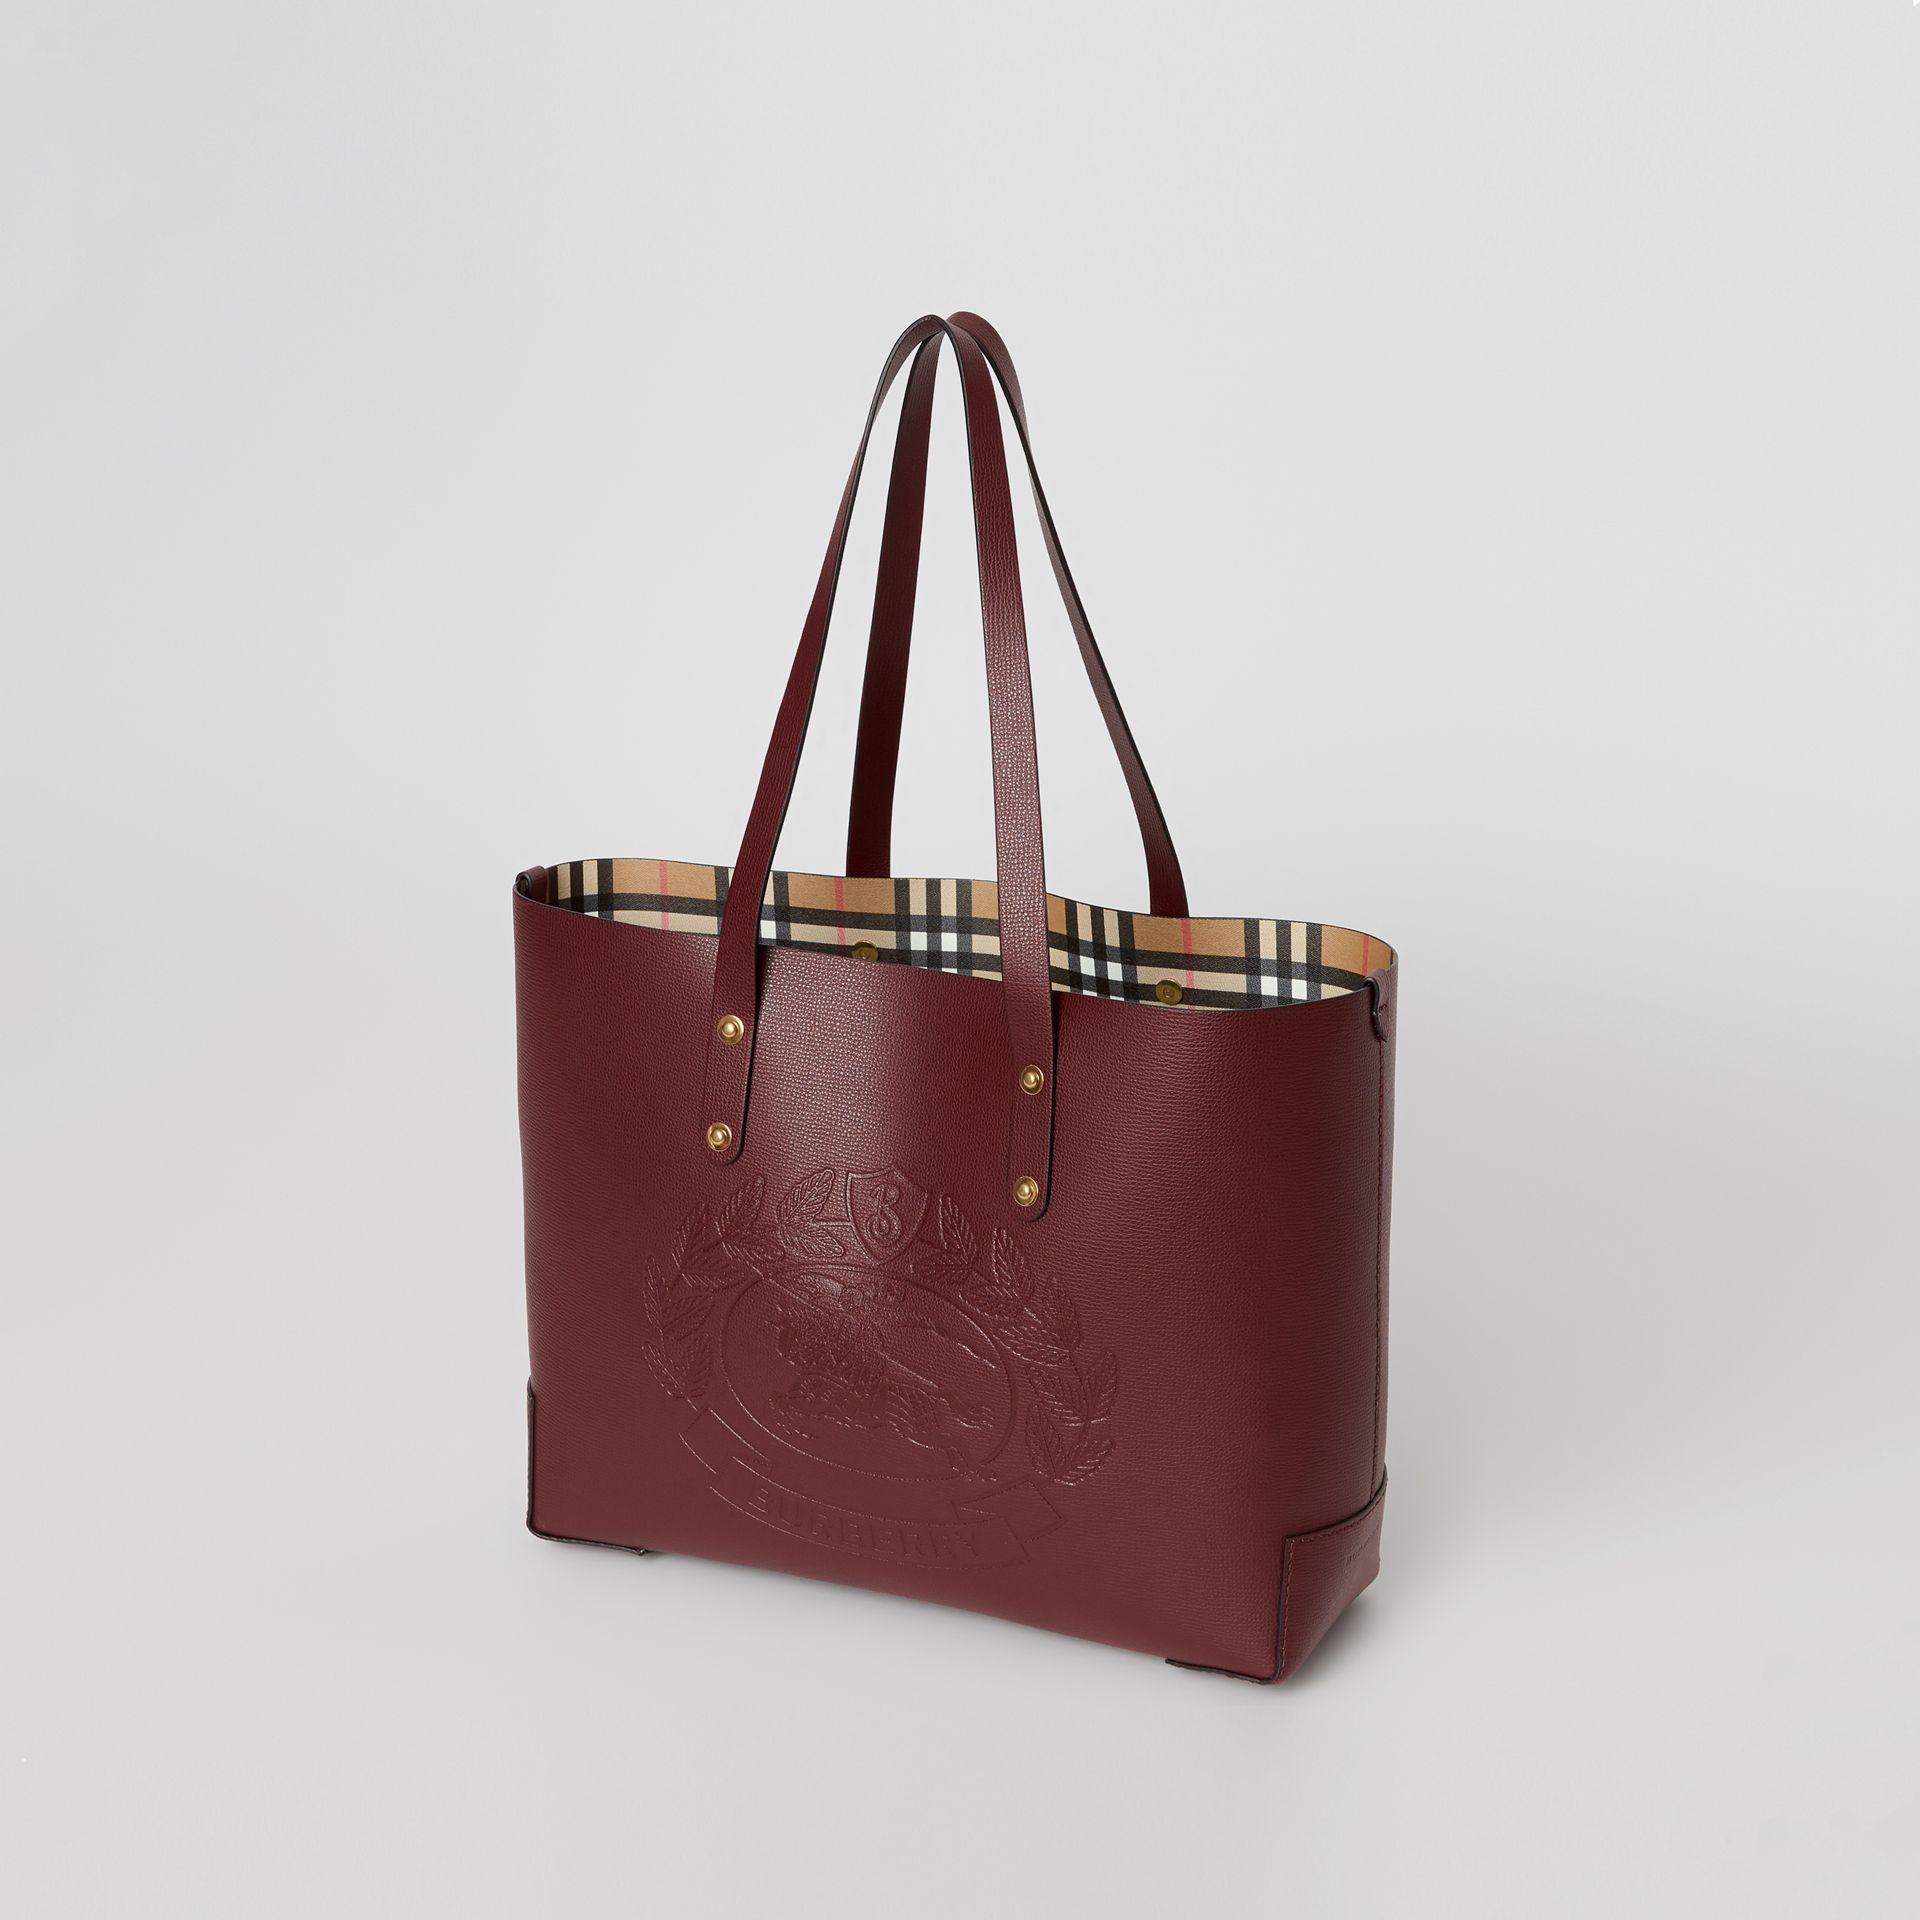 Small Embossed Crest Leather Tote in Burgundy - Women | Burberry - gallery image 5